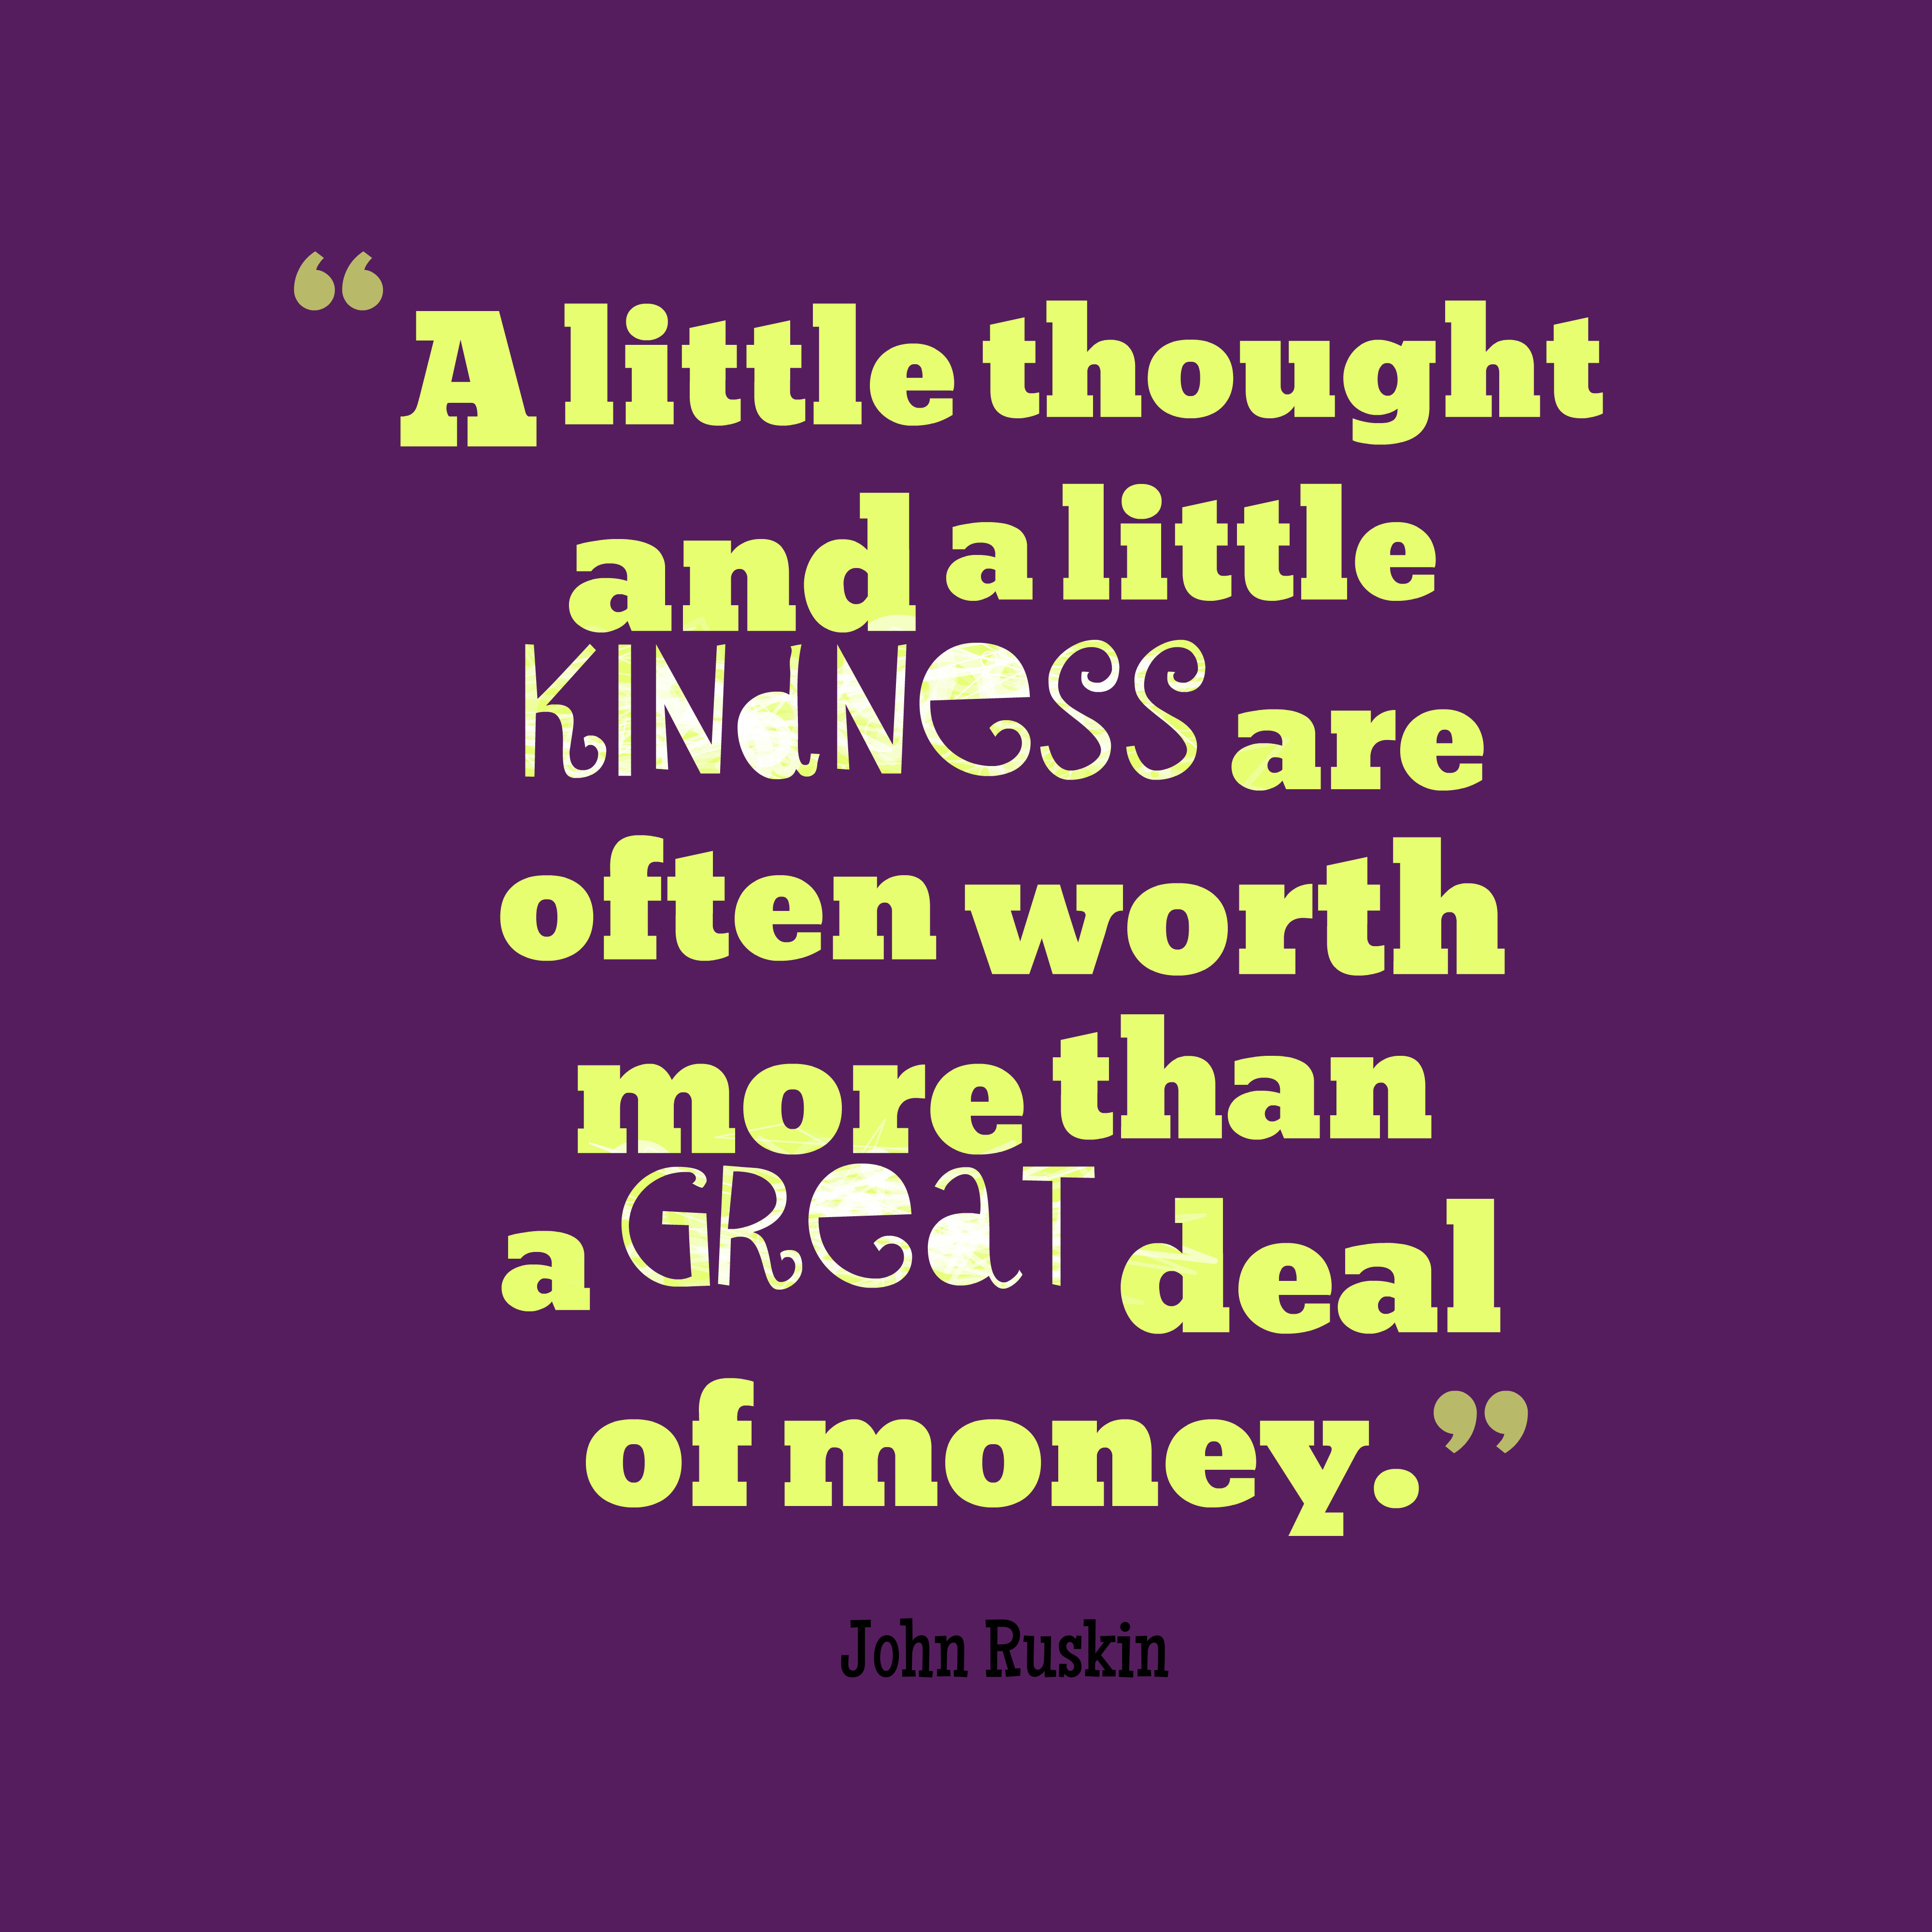 Quotes image of A little thought and a little kindness are often worth more than a great deal of money.